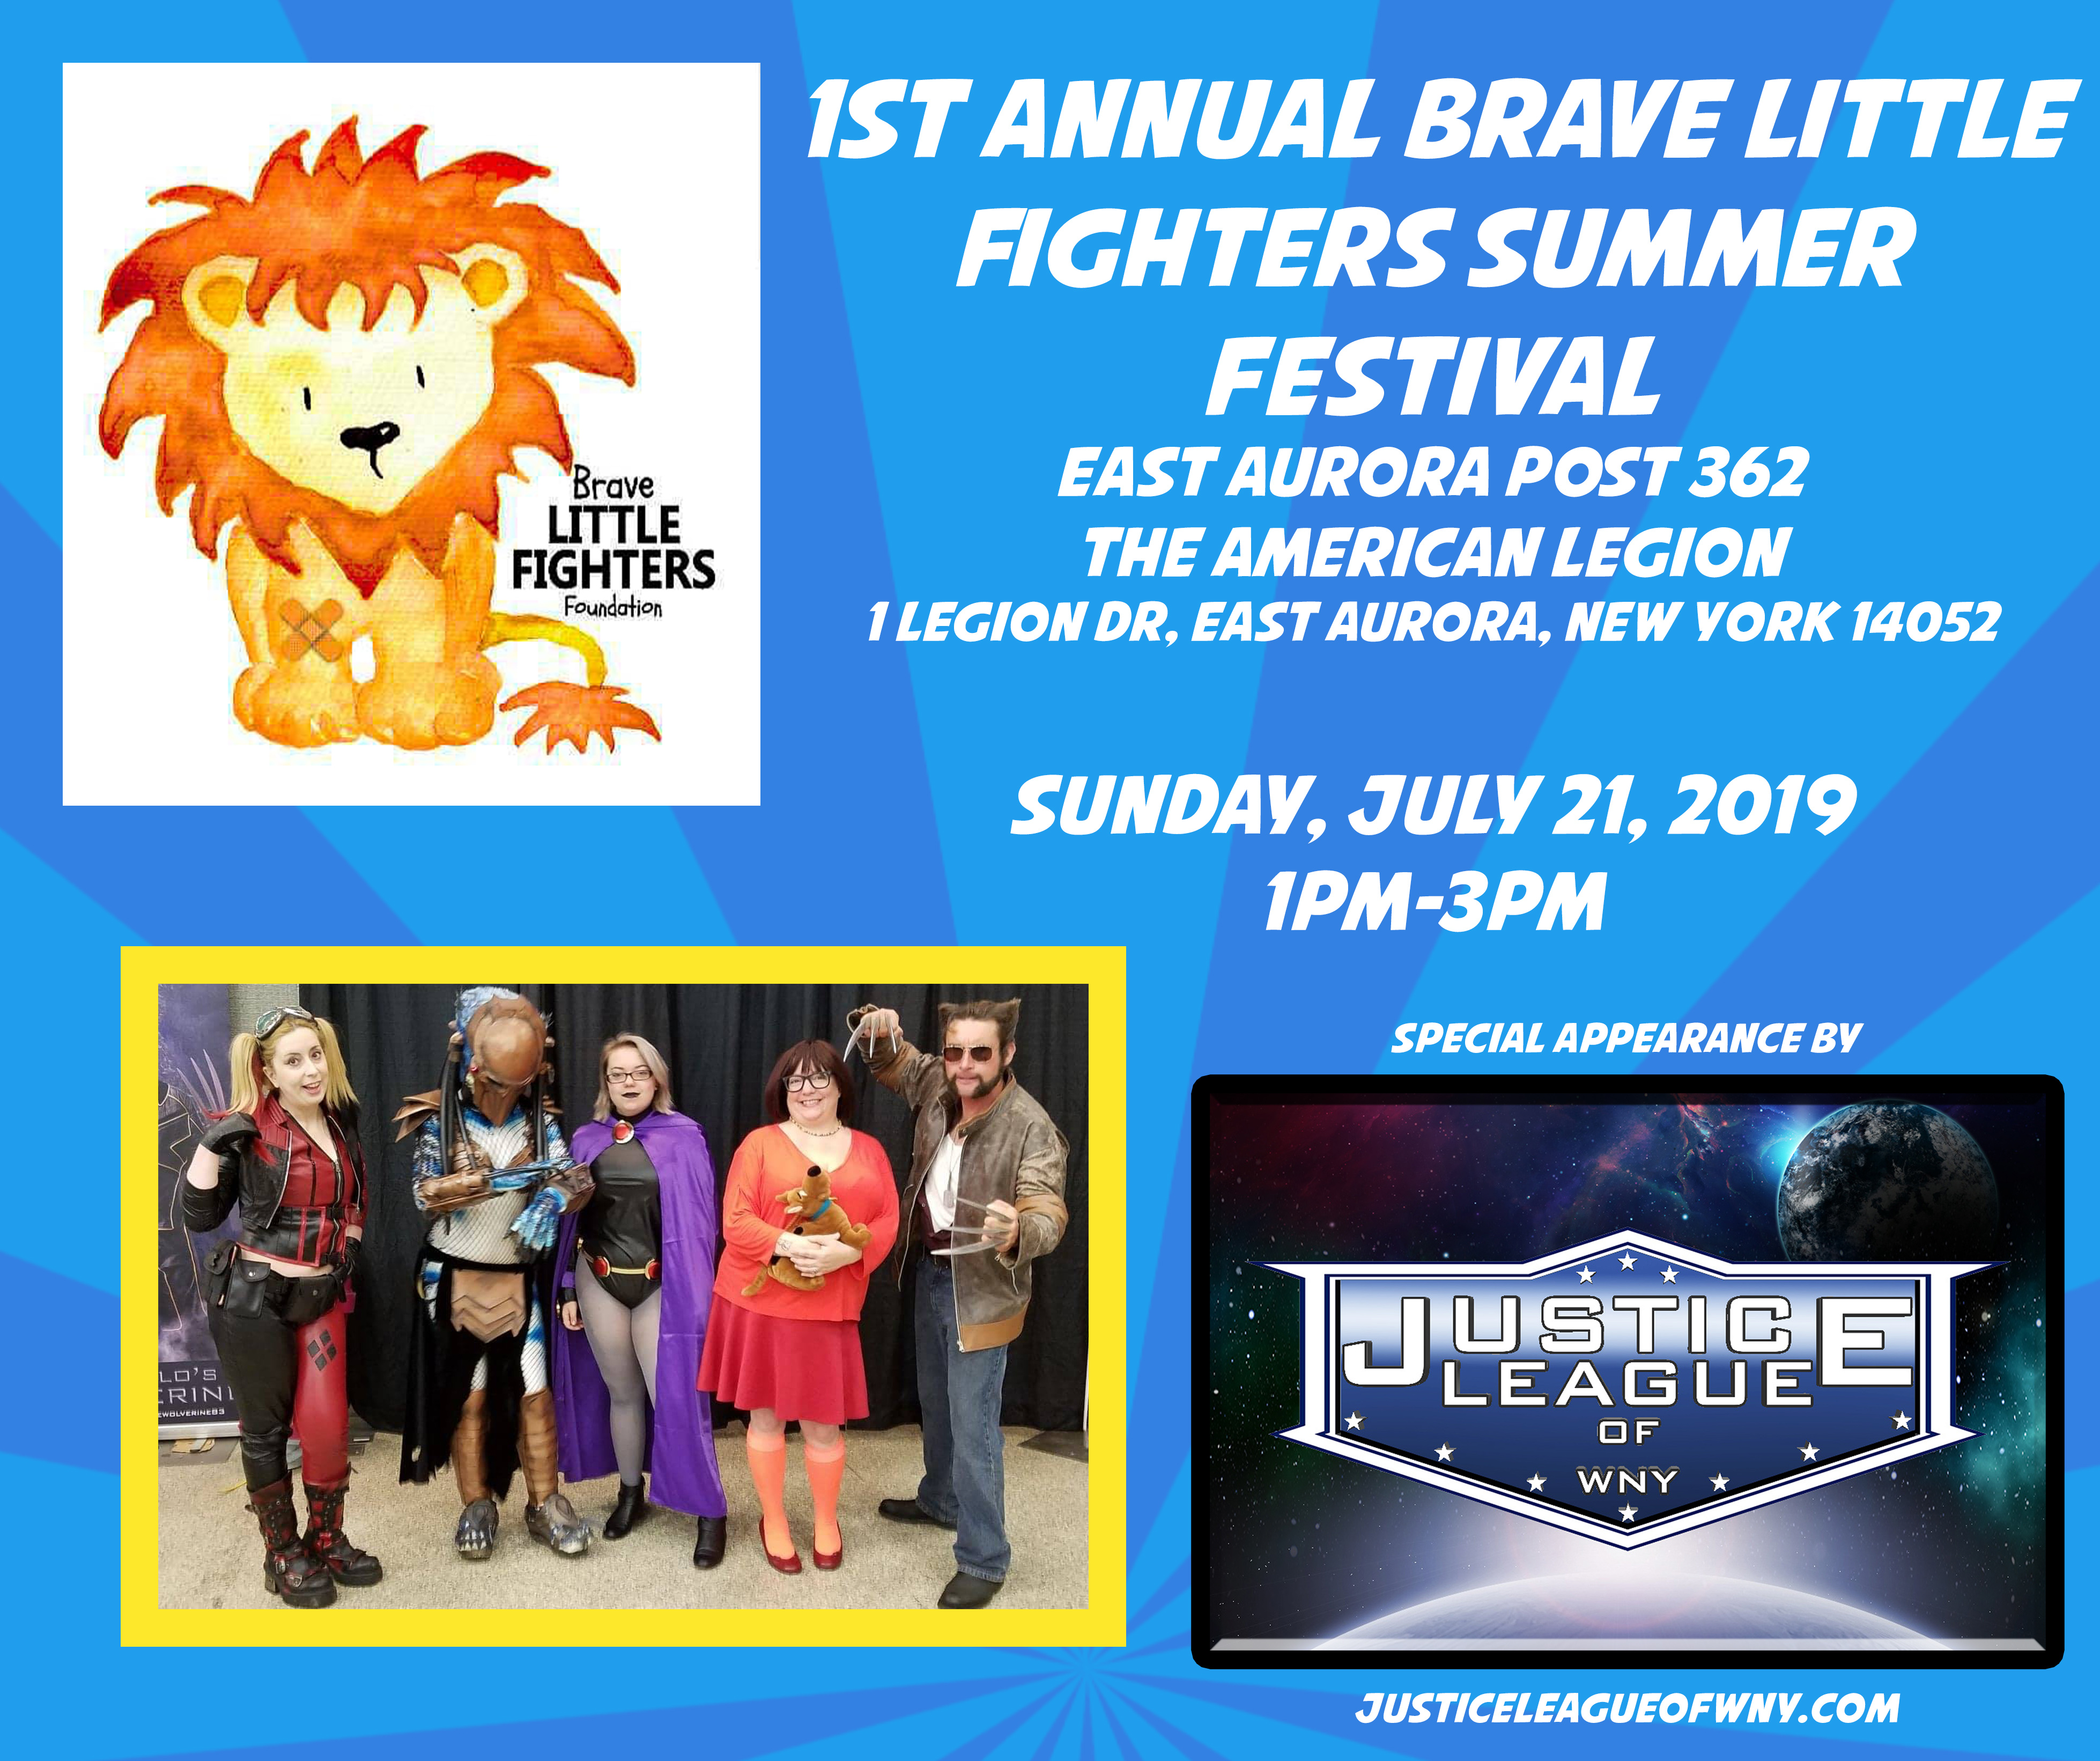 1st Annual Brave Fighters Summer Festival